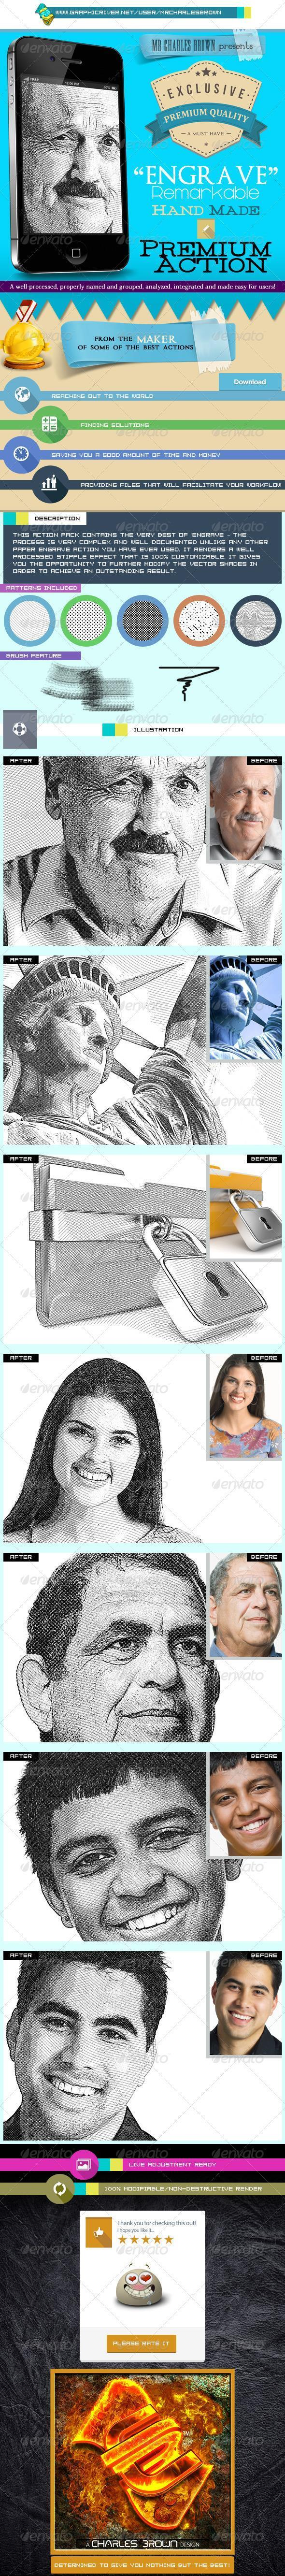 Hand Made Engrave Photoshop Actions